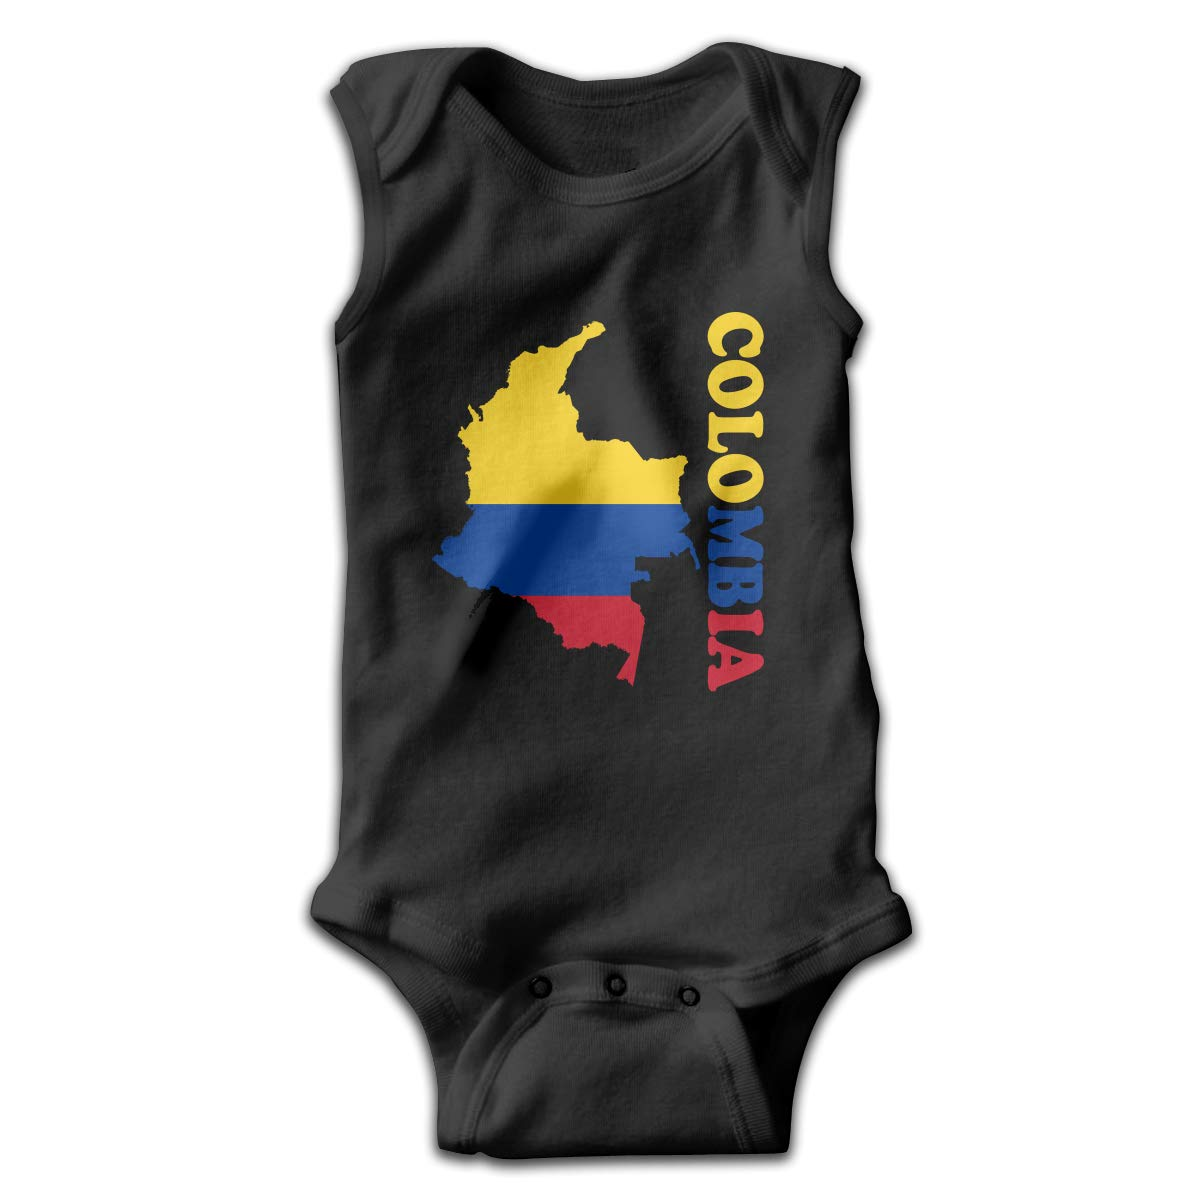 MMSSsJQ6 Colombia Flag Map Infant Baby Boys Girls Crawling Suit Sleeveless Romper Bodysuit Rompers Jumpsuit